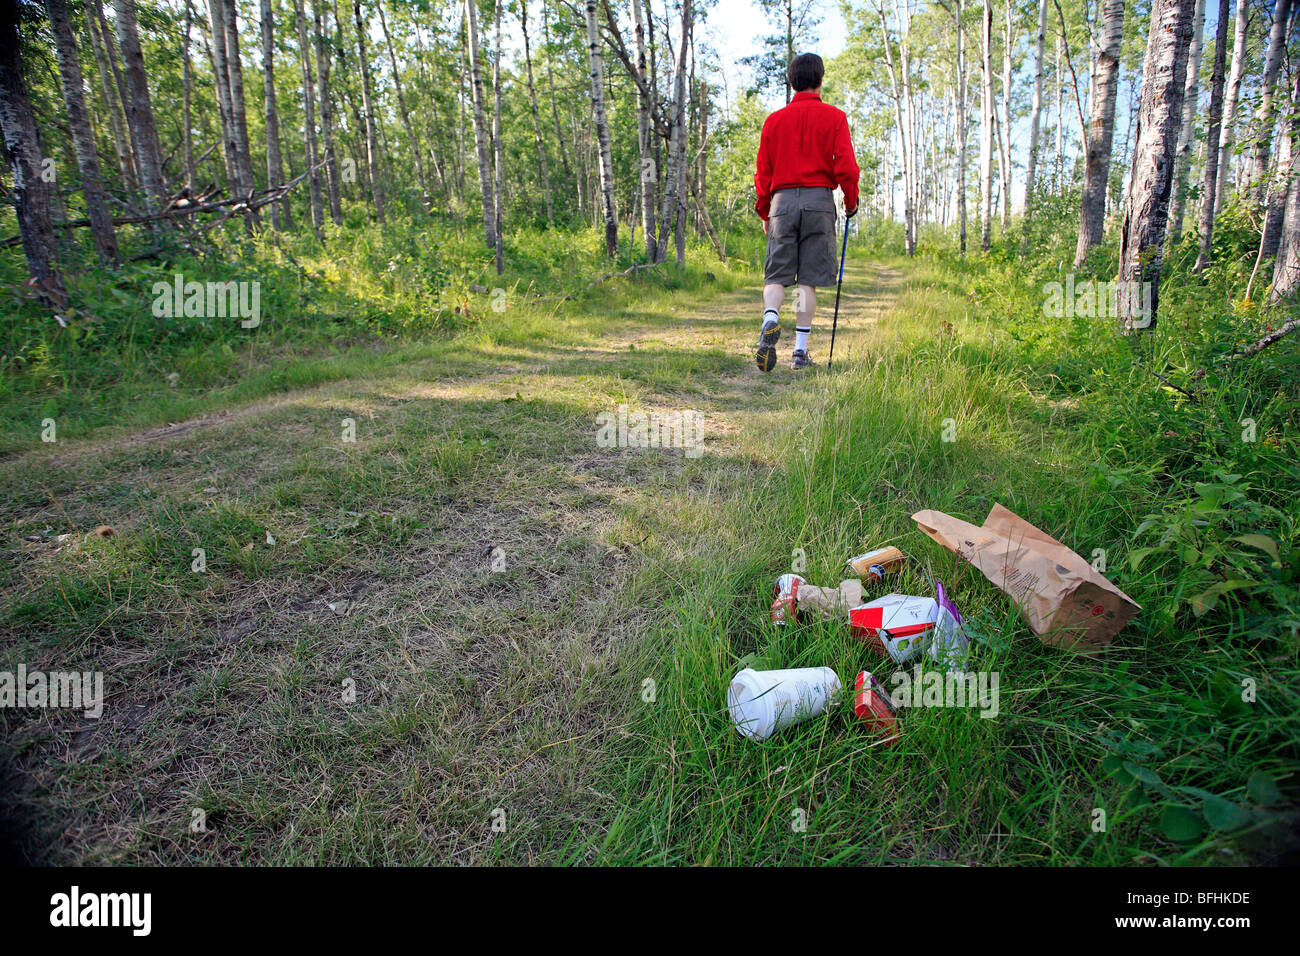 Middle age male hiking on forest trail with garbage on the ground. - Stock Image